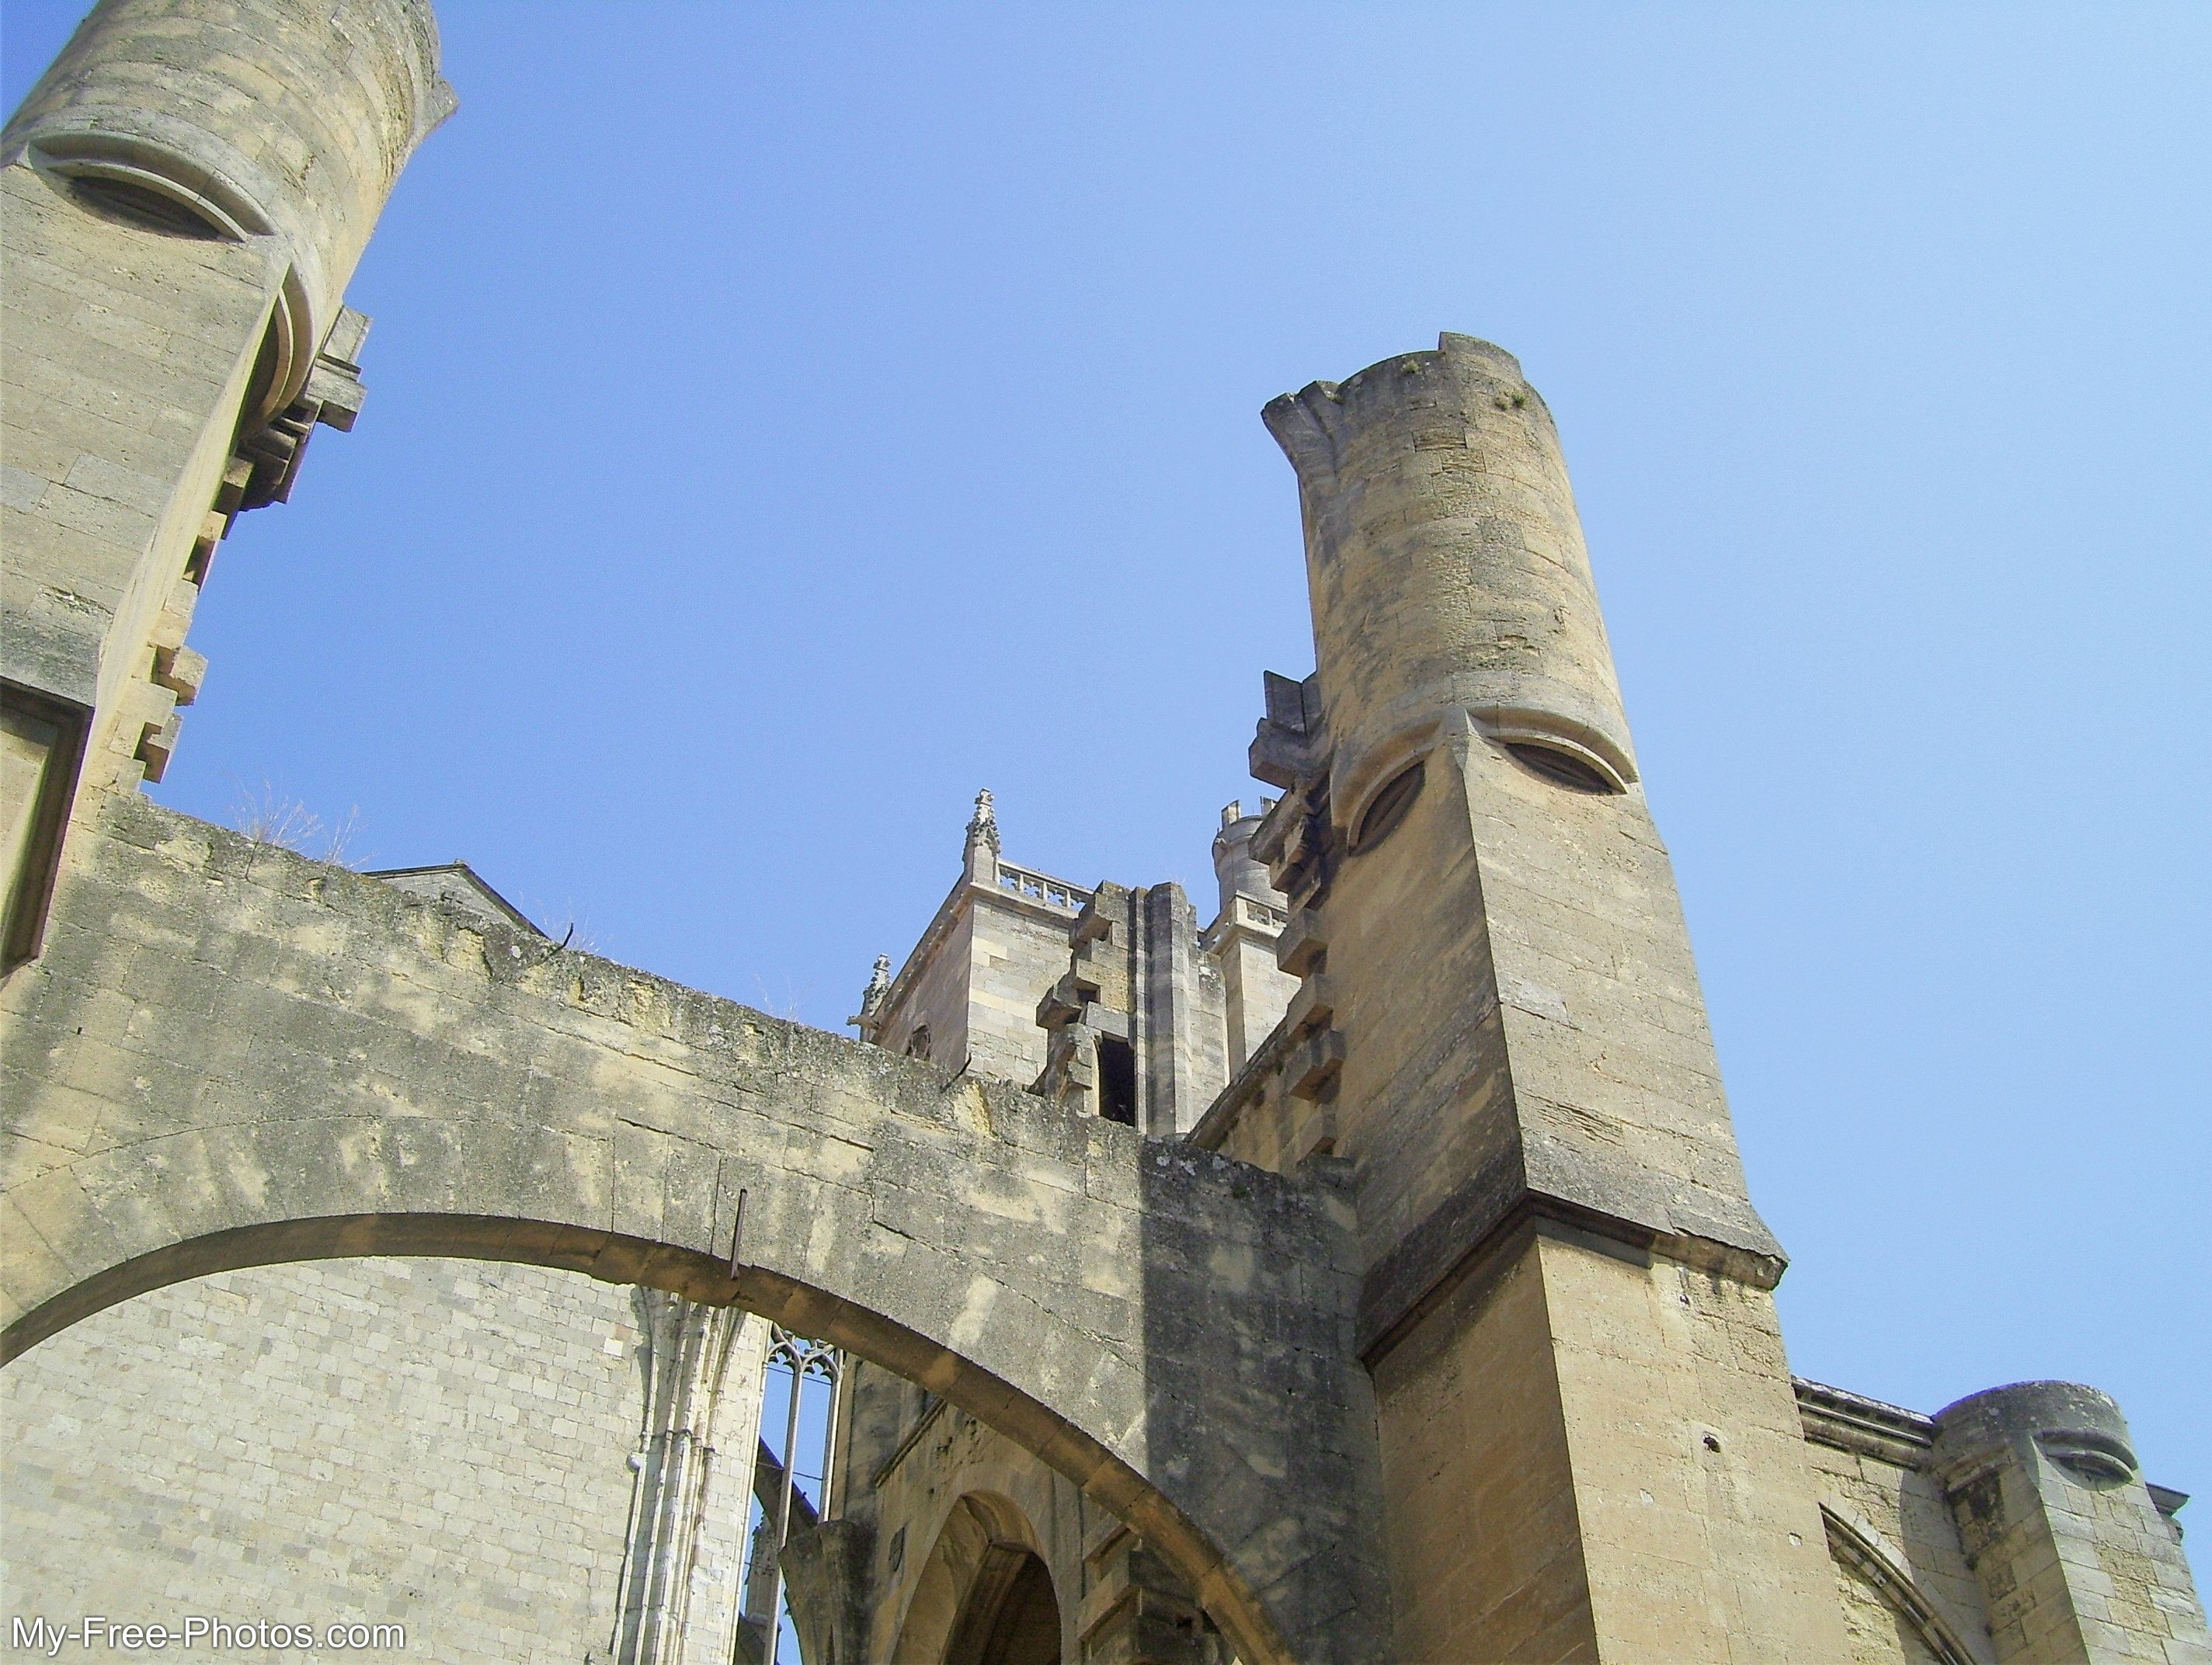 Saint Just Cathedral and Archbishop's Palace, Narbonne France